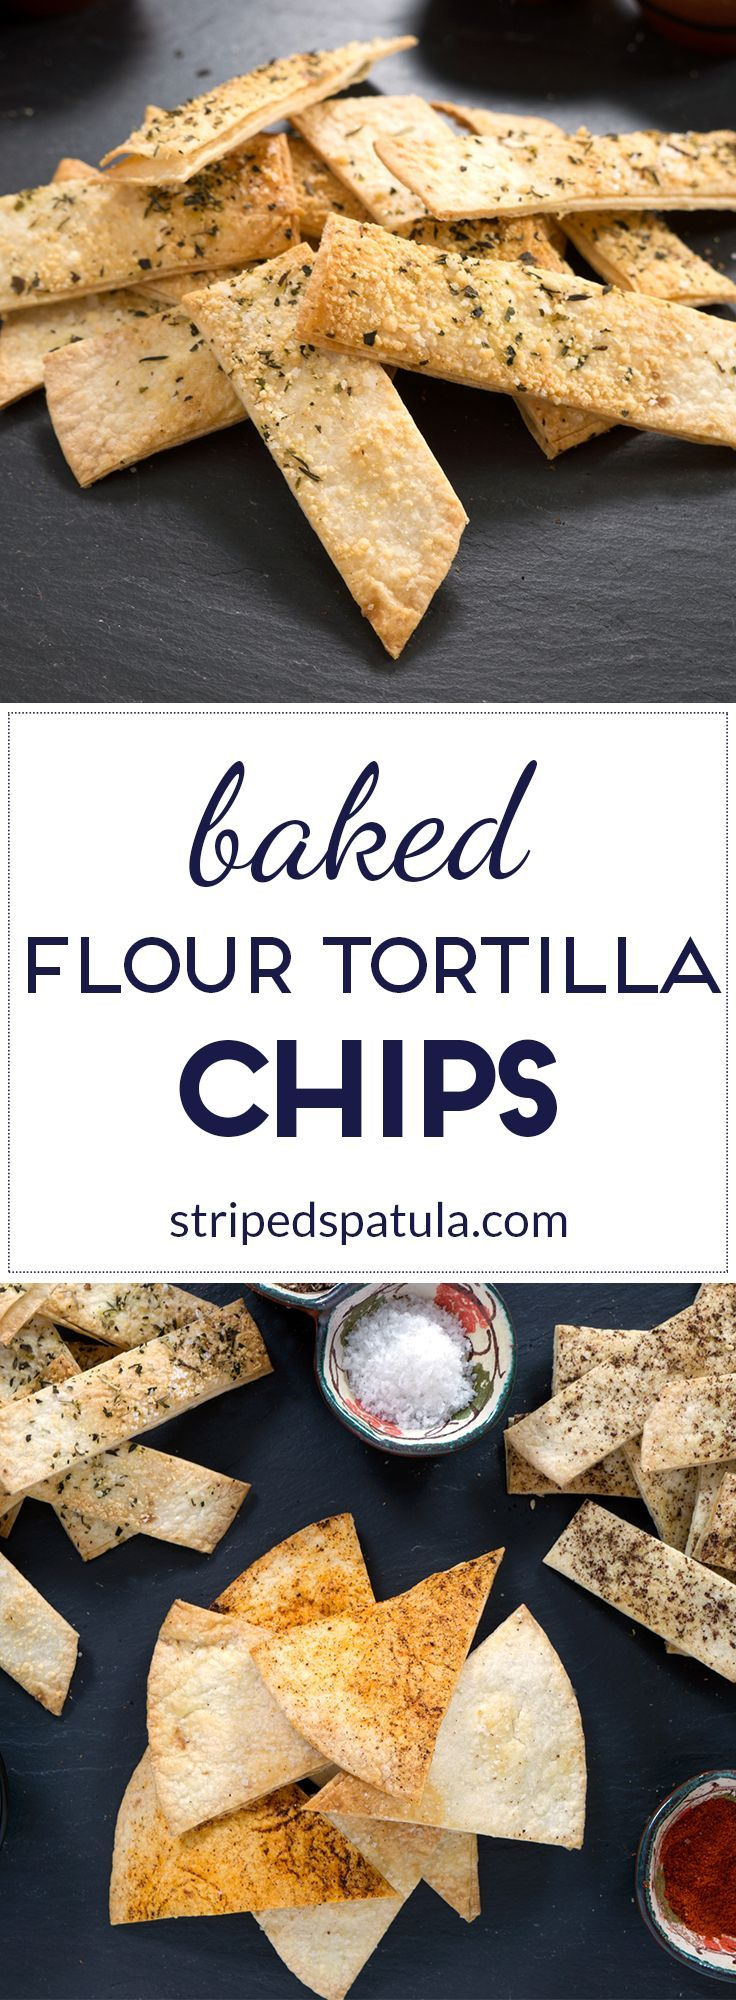 Light, flaky, and crisp, seasoned with a variety of sweet and savory spices, Baked Flour Tortilla Chips are a satisfying low-guilt snack.